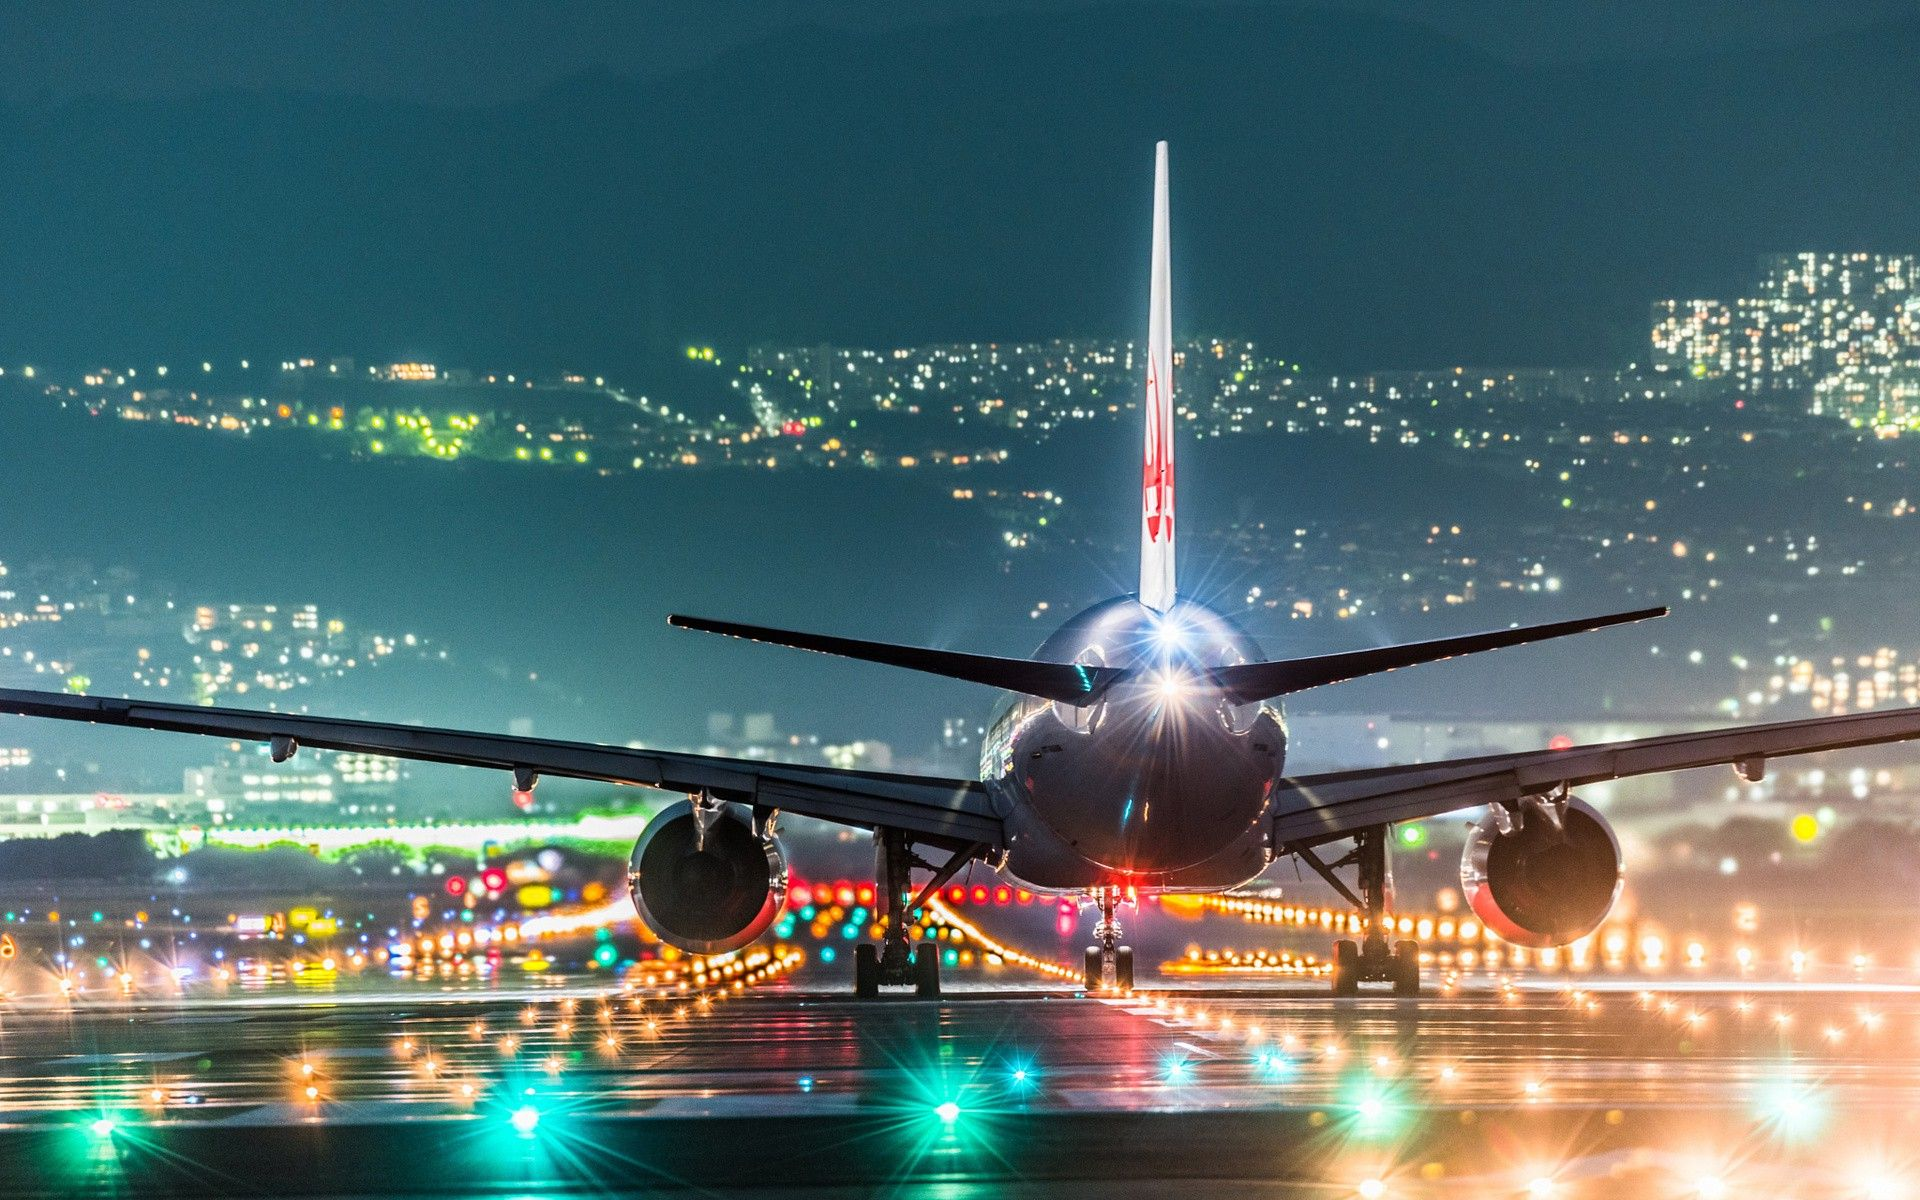 Plane Landing On Night Airport Runway Lights Wallpaper HD